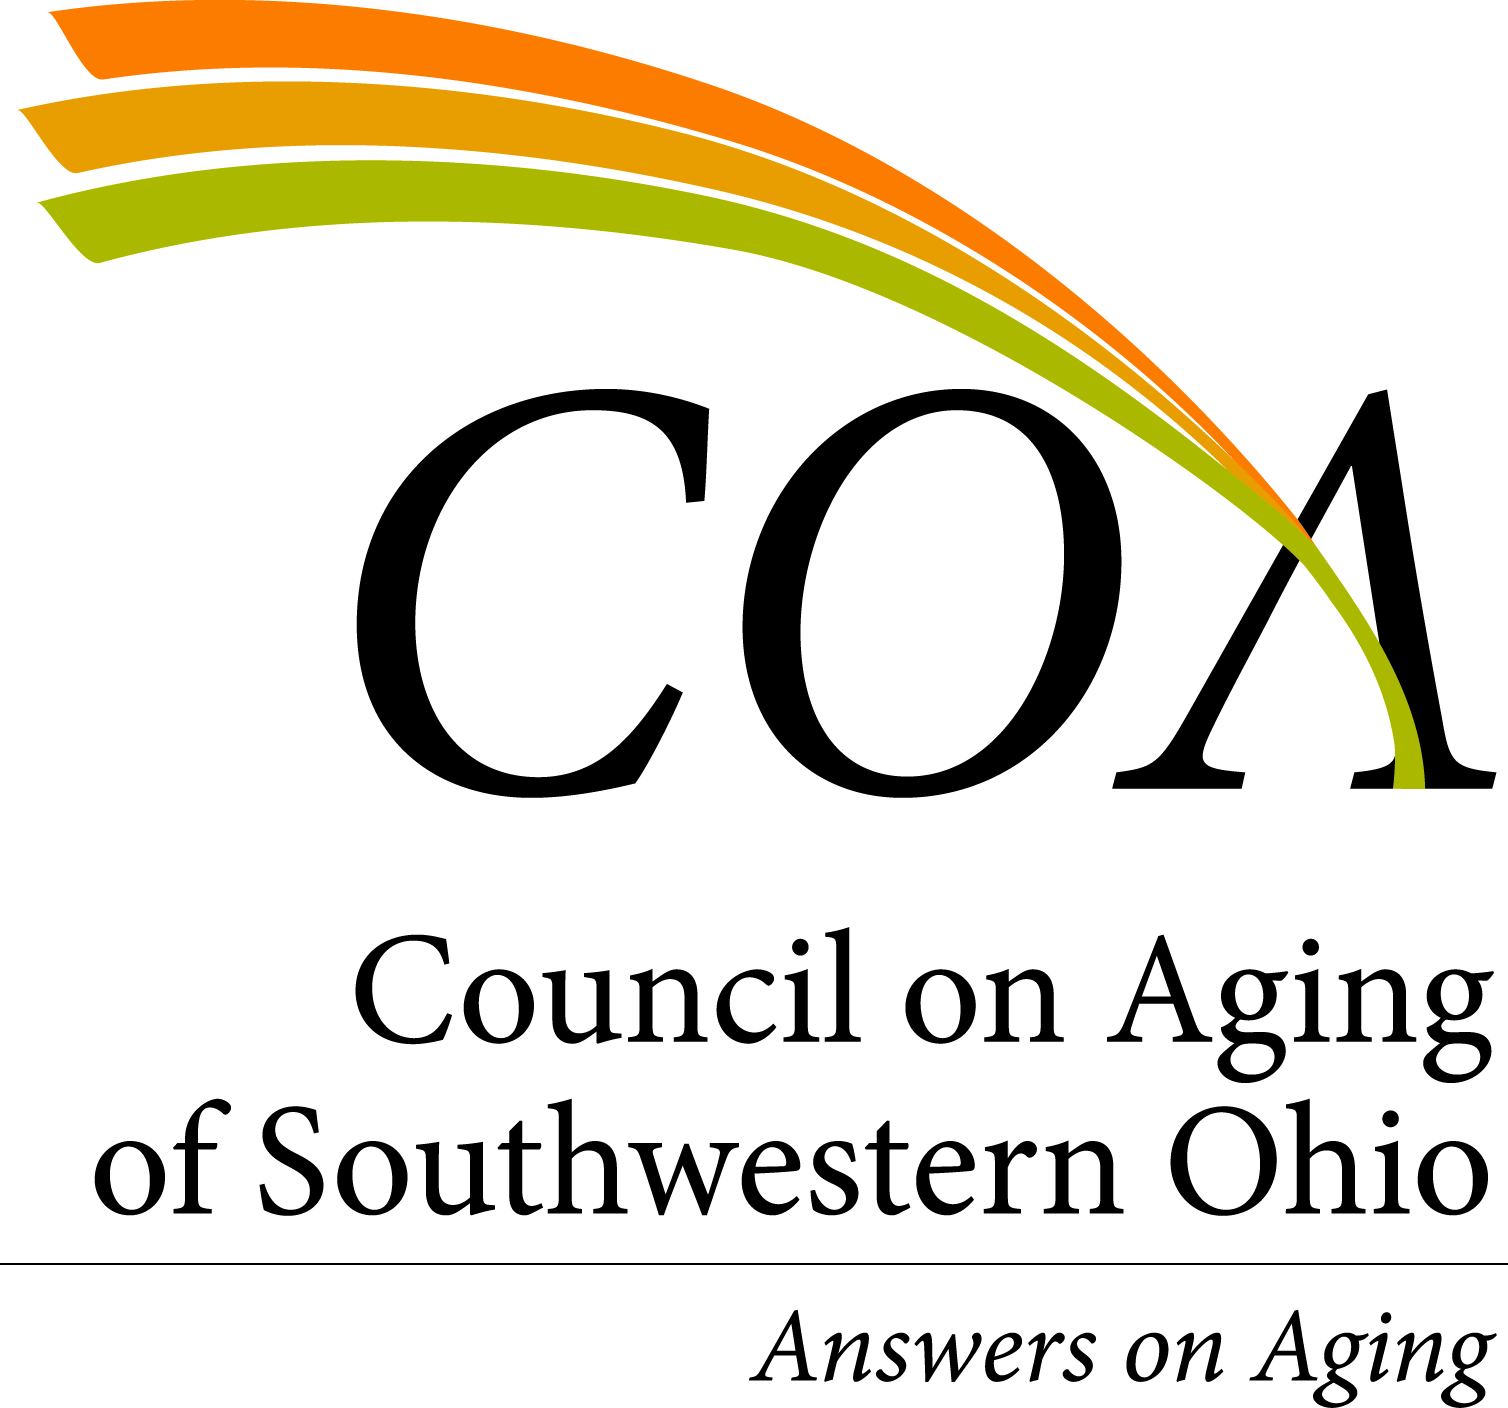 COUNCIL ON AGING OF SOUTHWESTERN OHIO